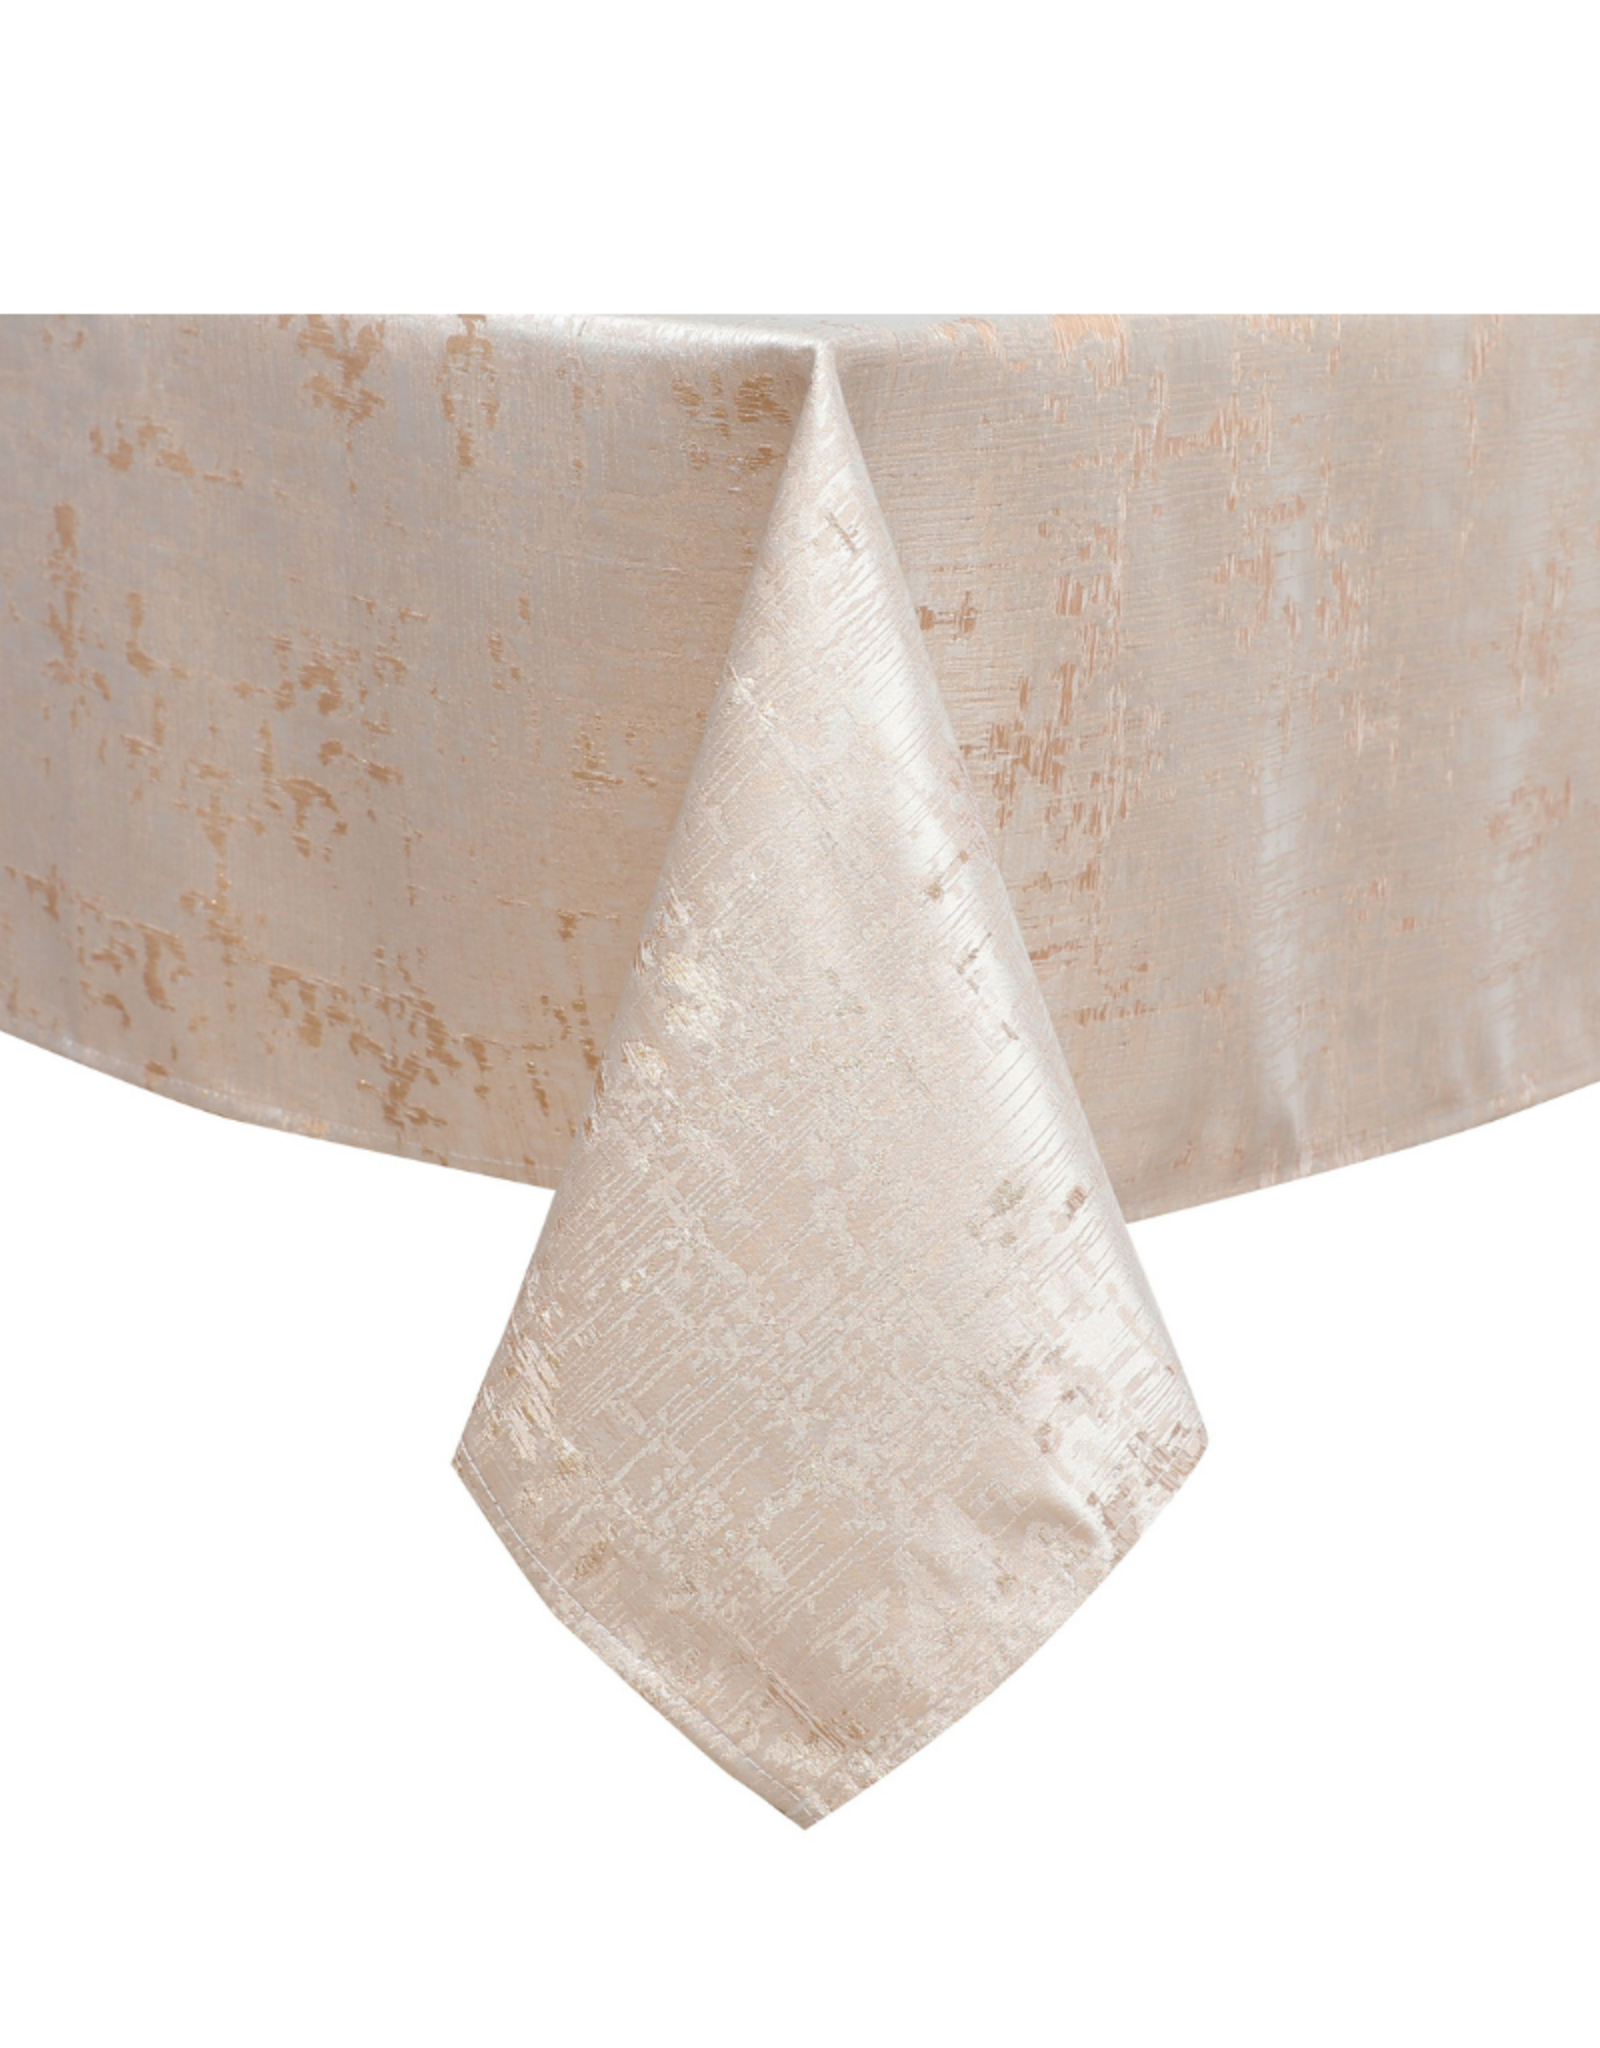 Jacquard Champagne Pink & Gold Tablecloth #1312